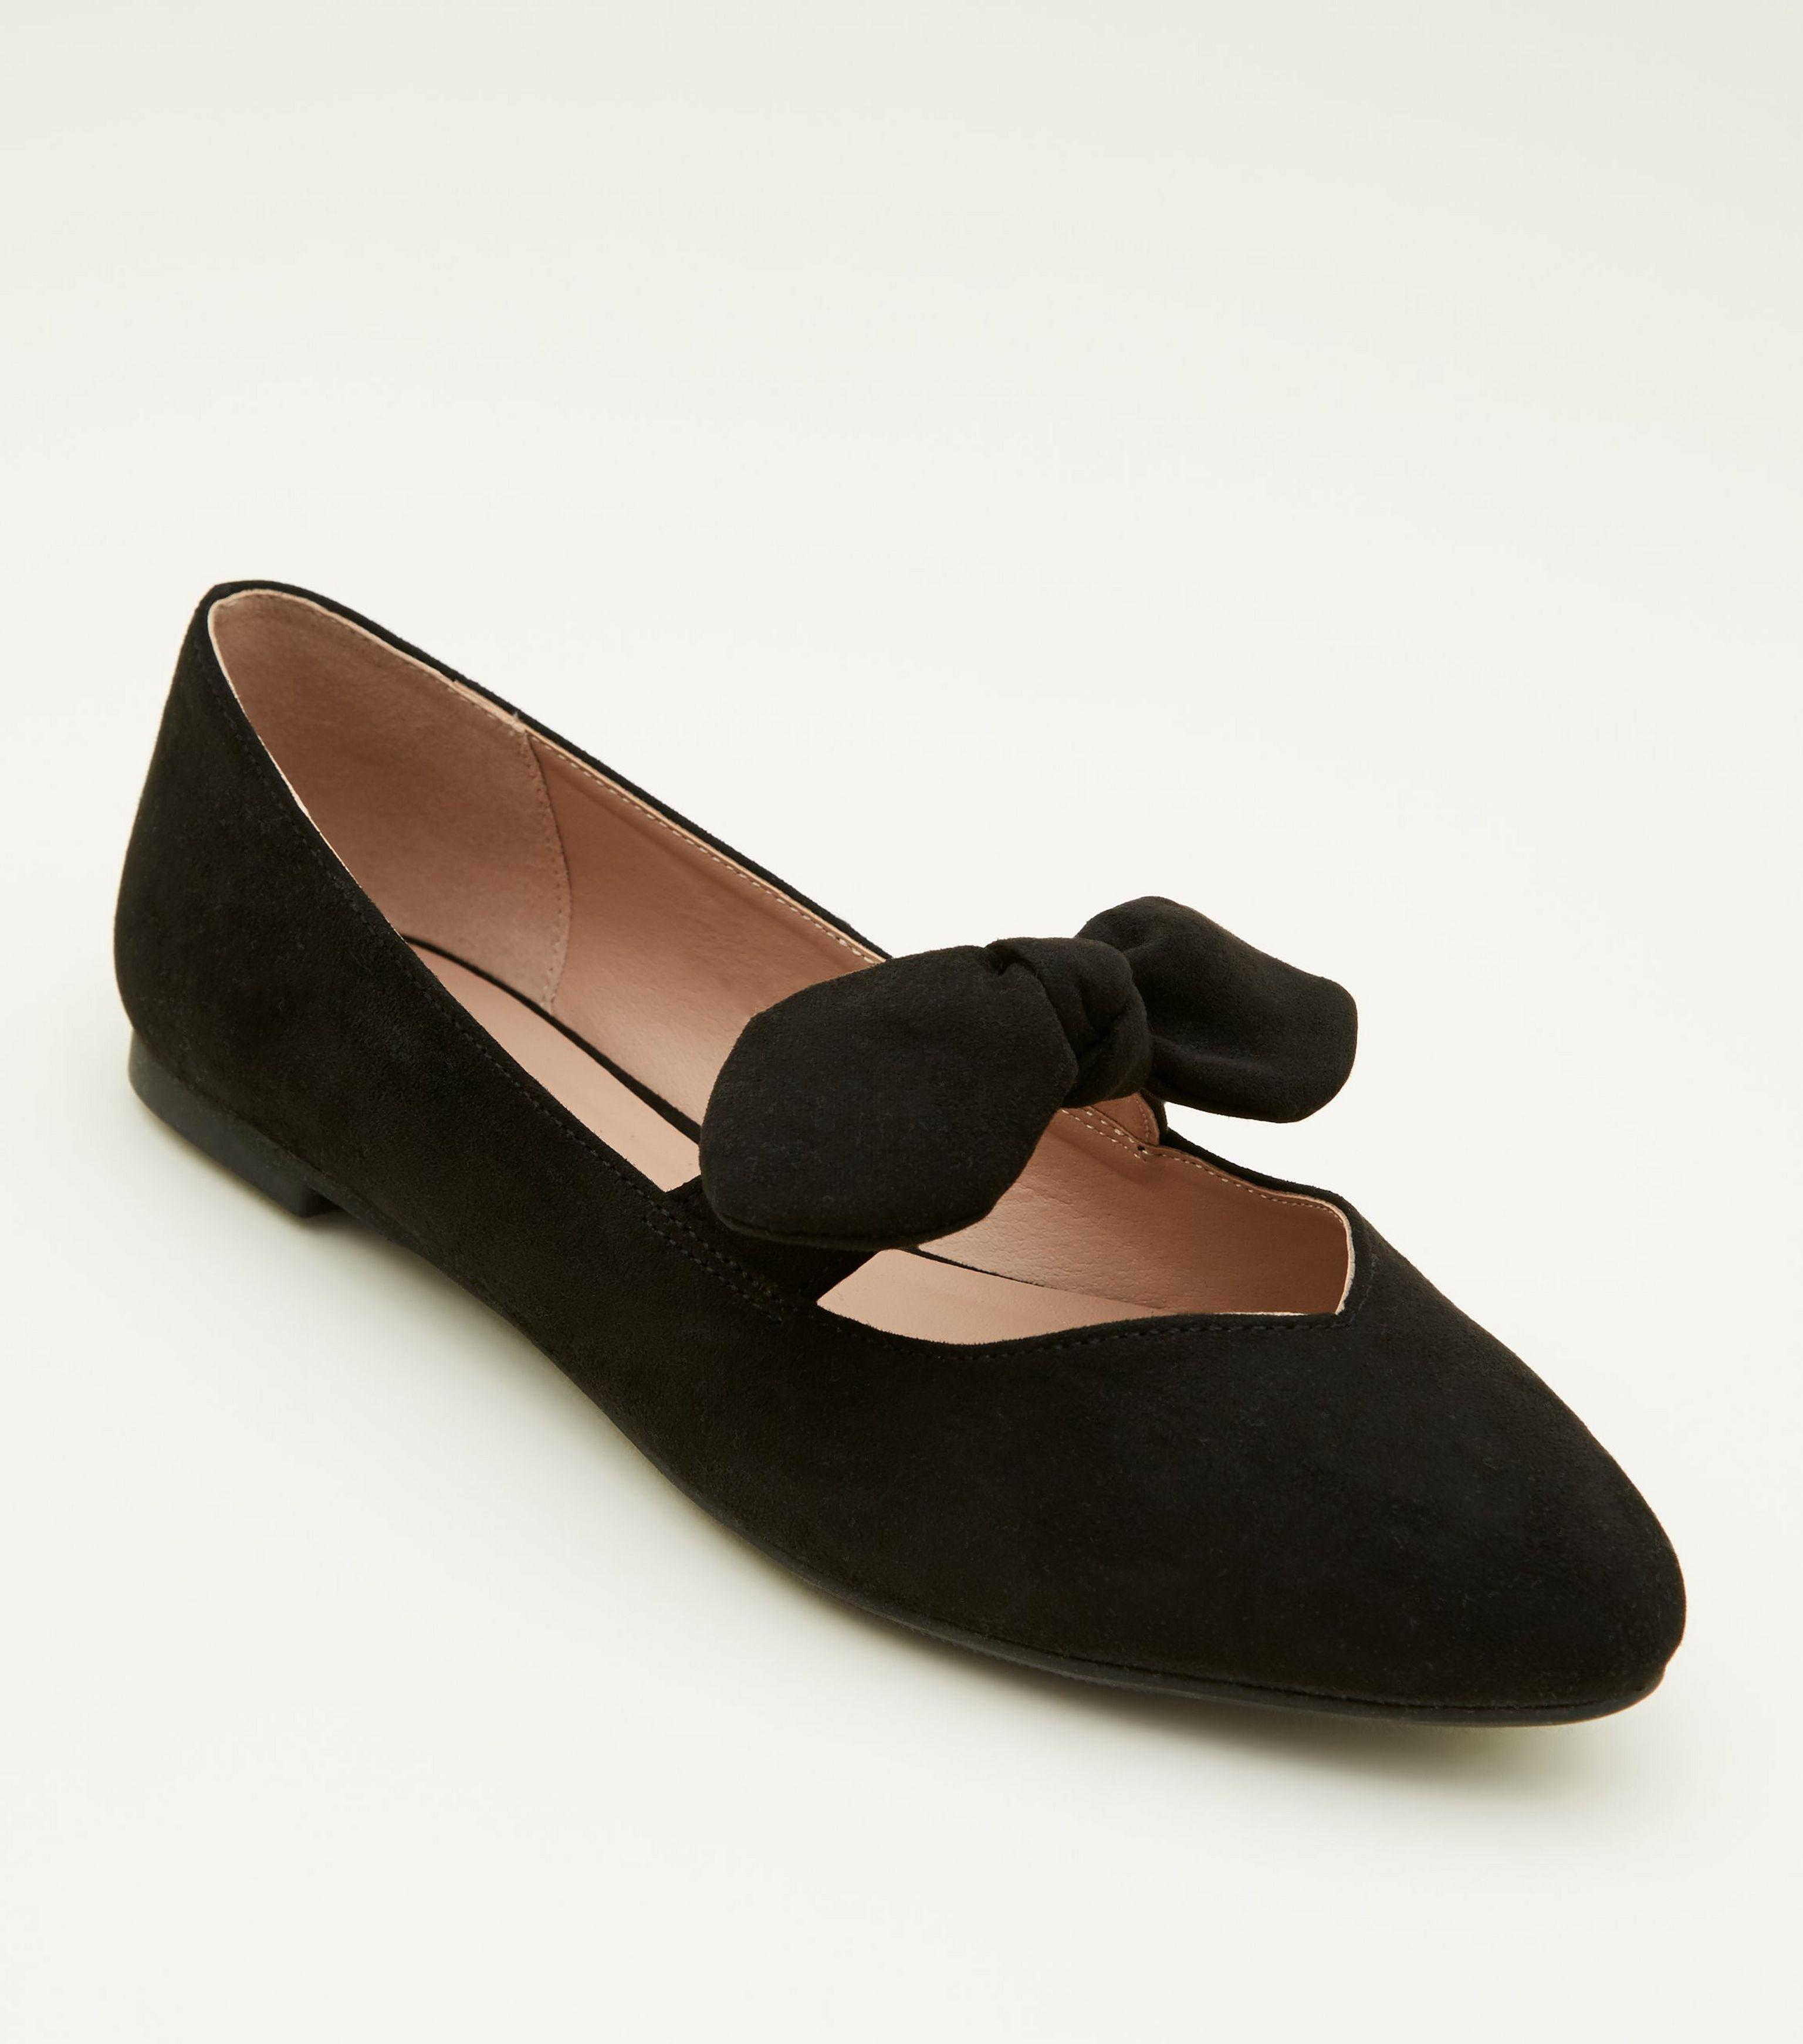 10b7e317d6 New Look Girls Black Suedette Bow Front Ballet Pumps in Black - Lyst